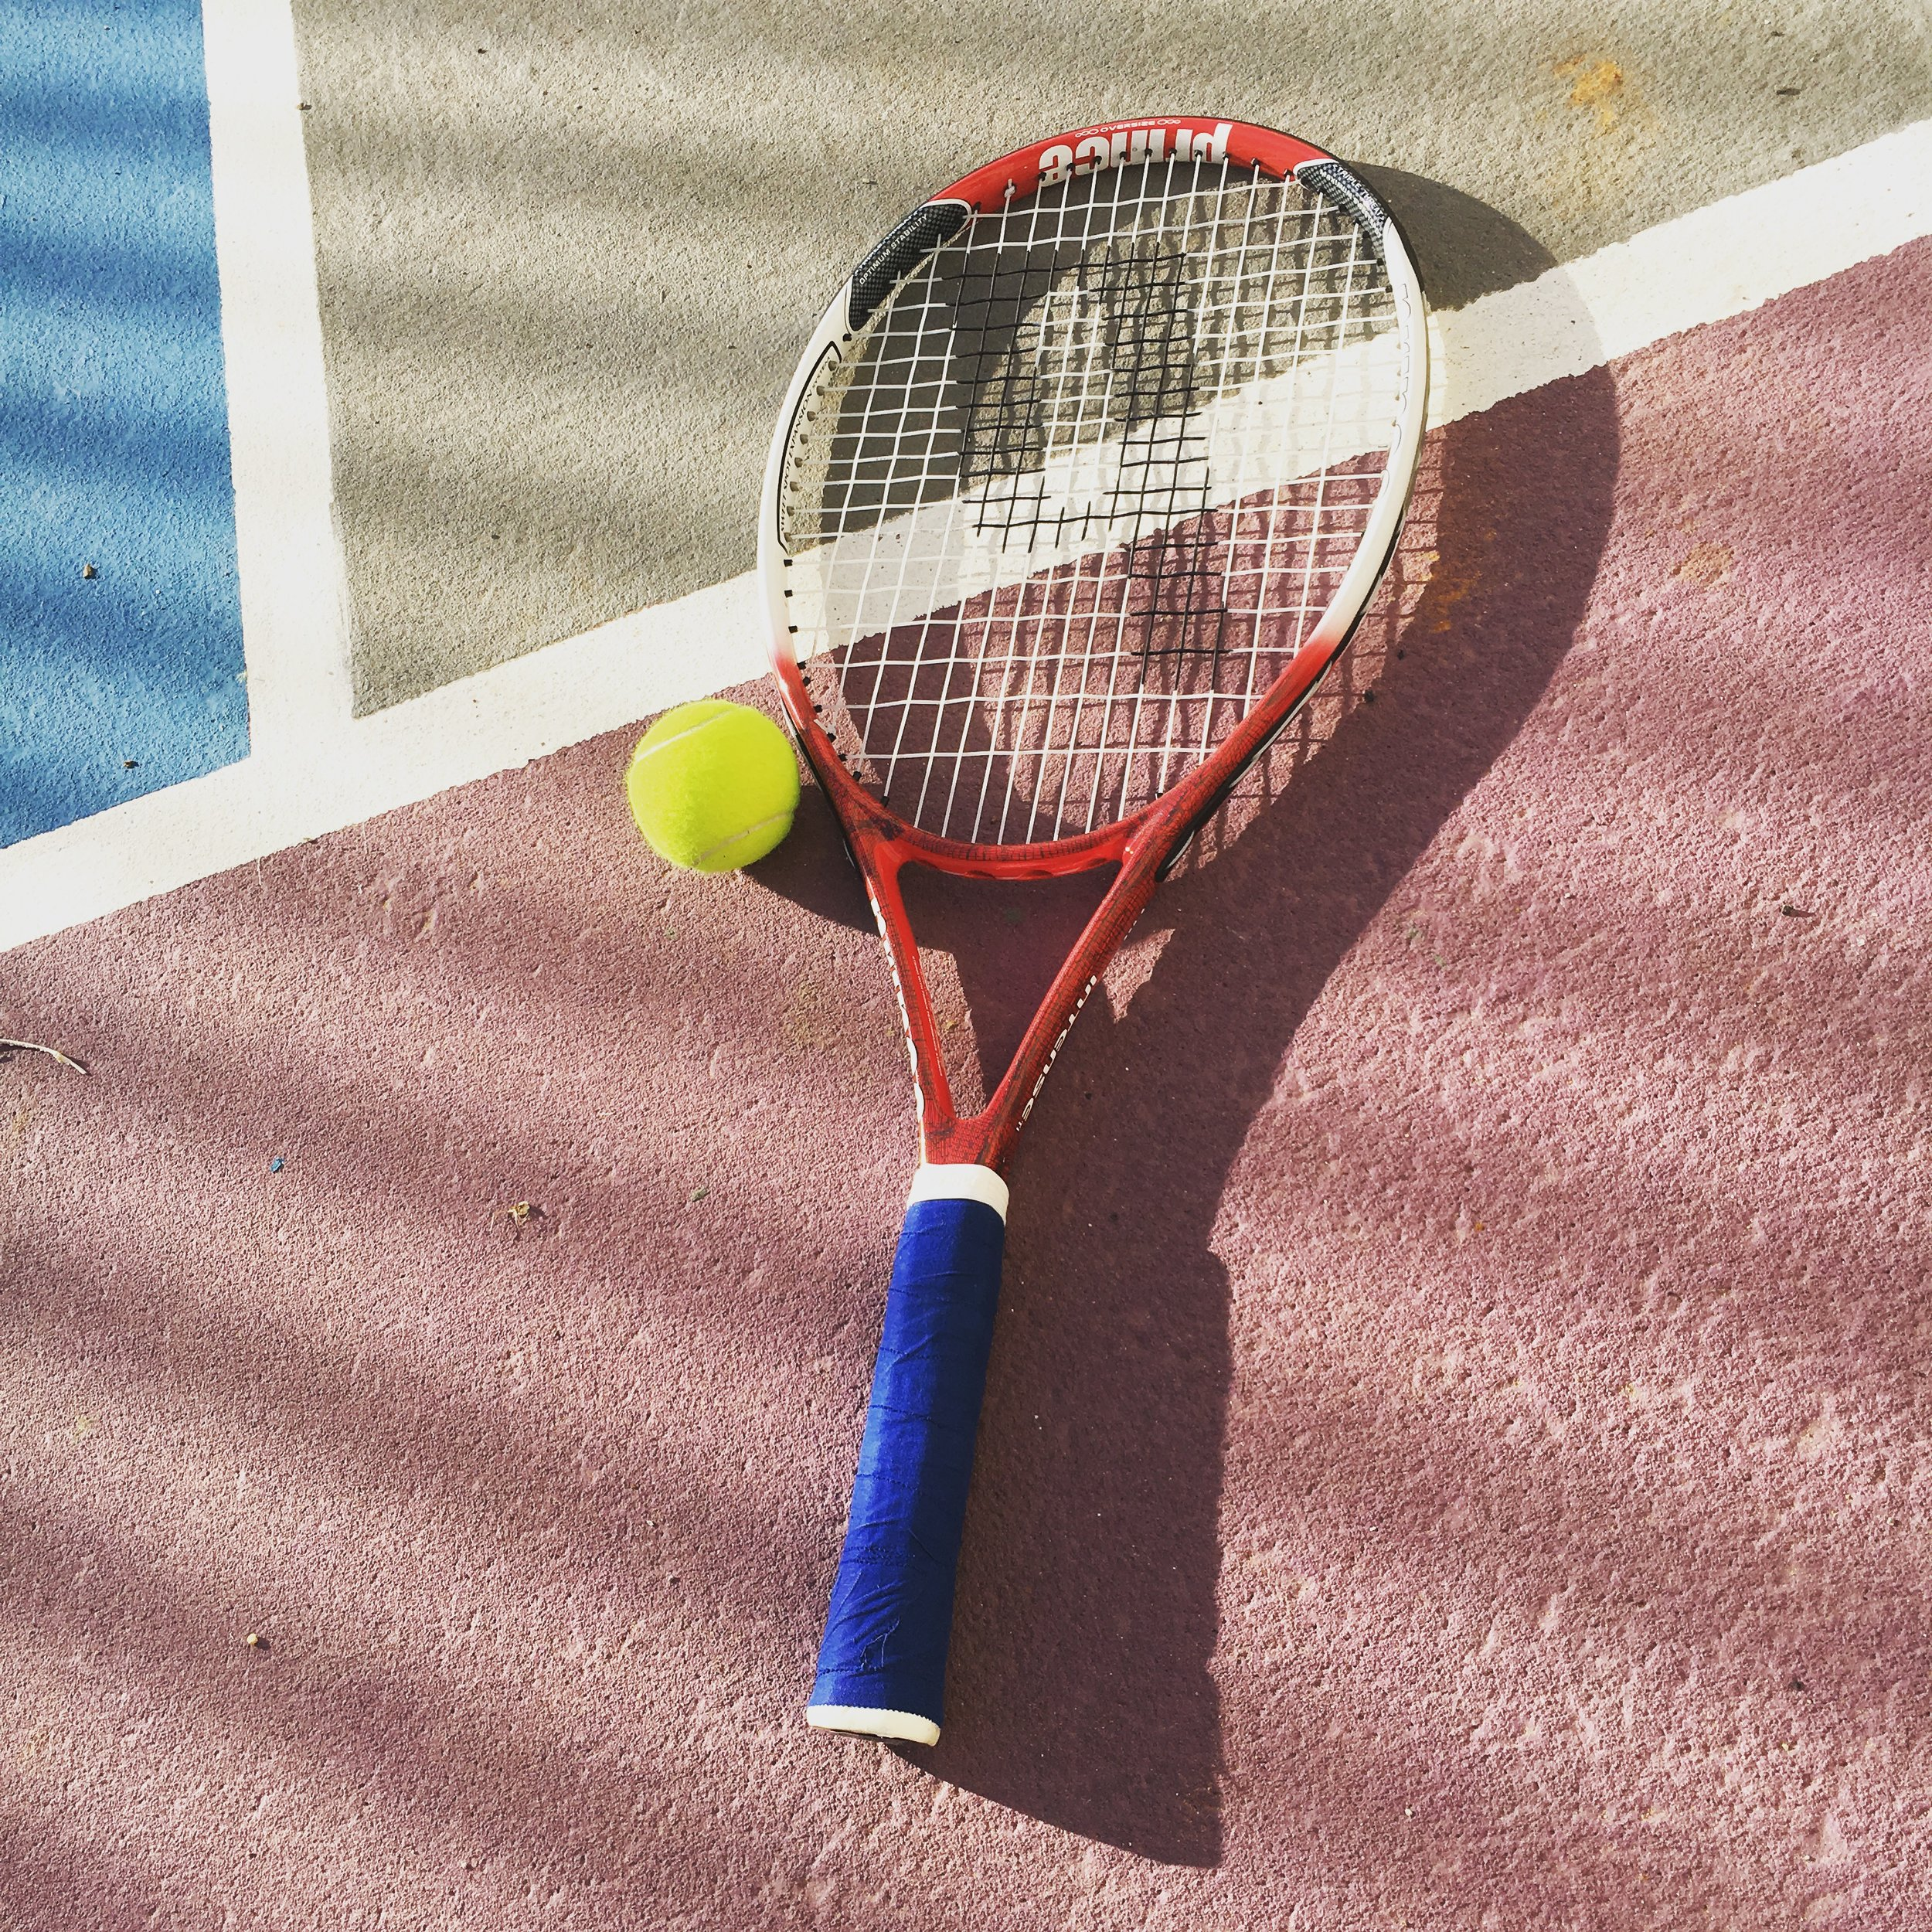 Borrow (or donate) a racquet - We're collecting the community's old racquets and lending them out for free to kids and families who may not otherwise have access to one.LEARN MORE >